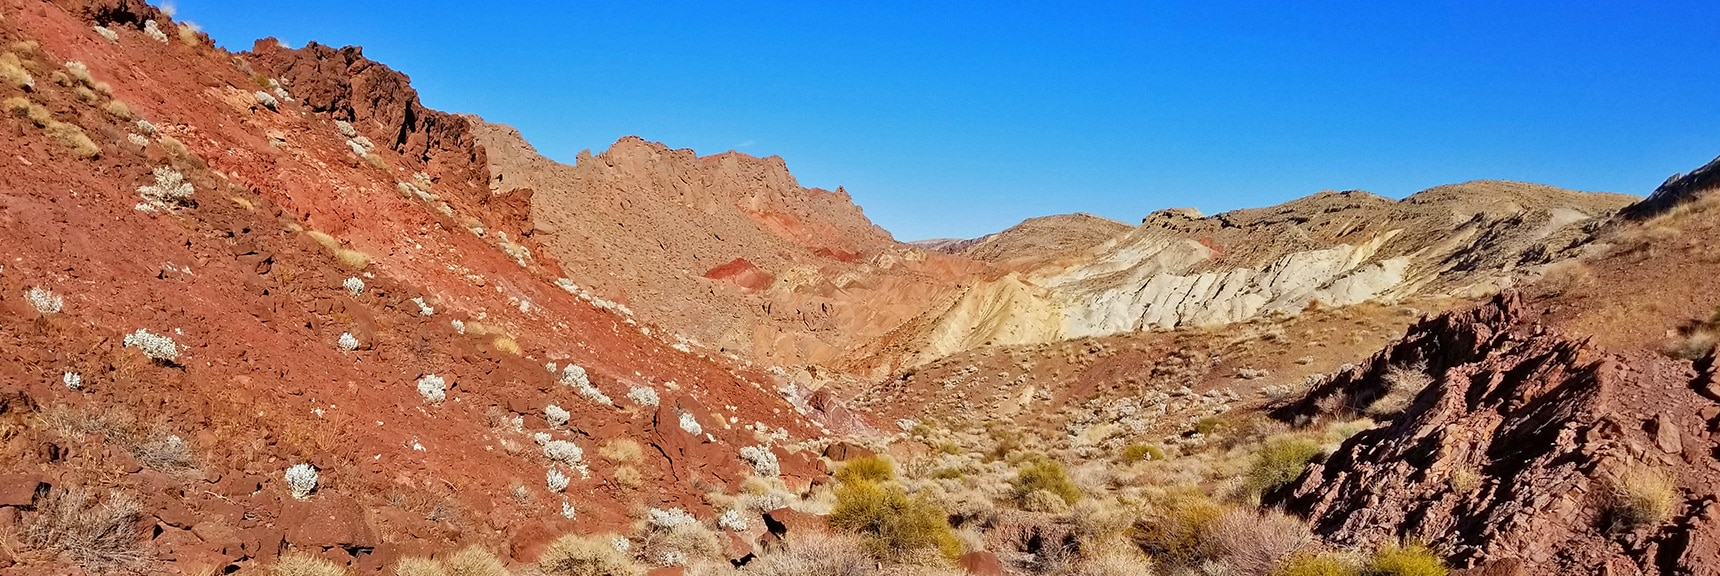 Returning to Northshore Rd. Through the Washes Below Hamblin Mt. | Hamblin Mountain, Lake Mead National Conservation Area, Nevada